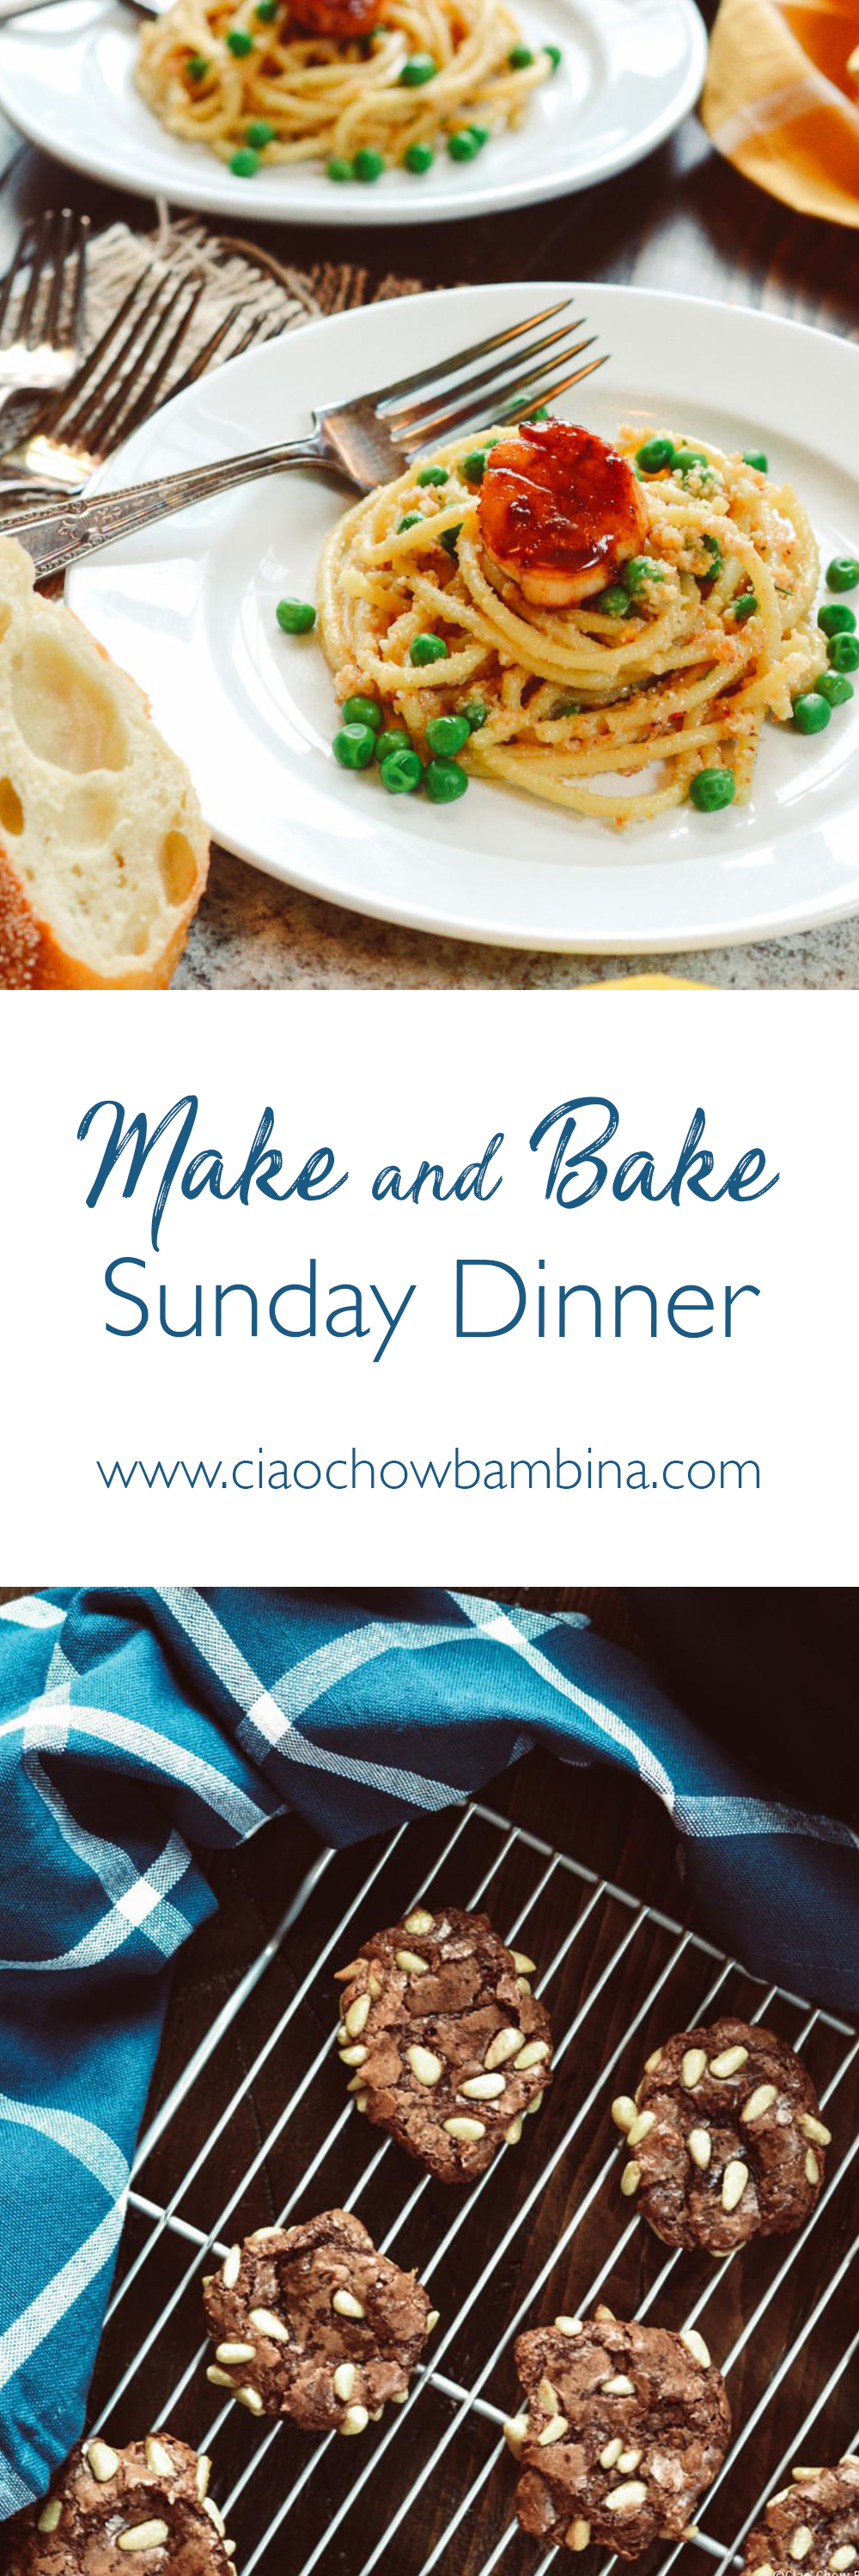 Make & Bake Sunday Dinner ciaochowbambina.com